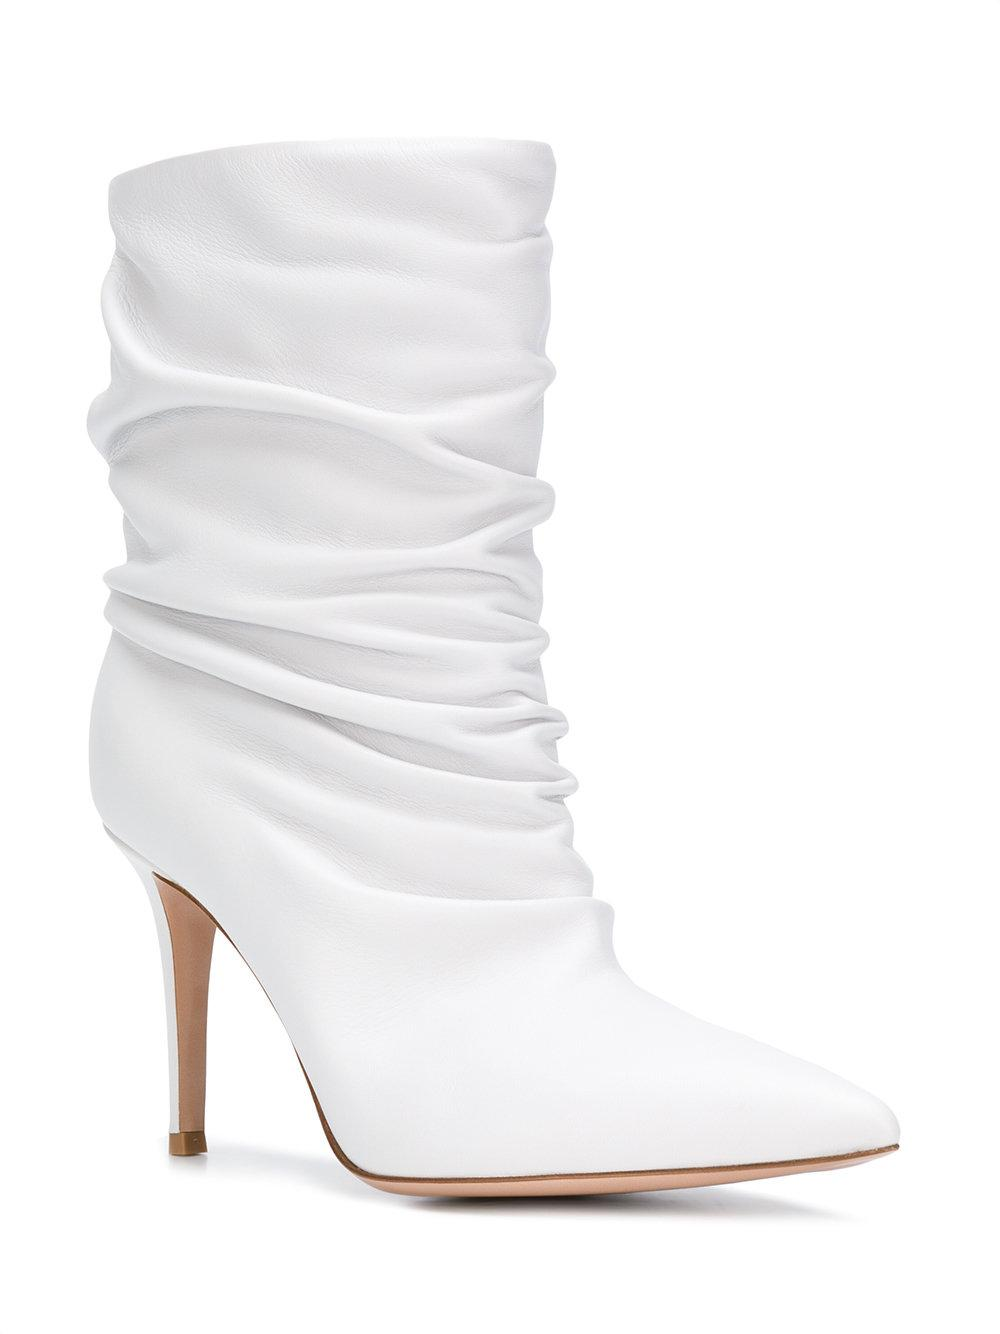 4a972fa7a6c0 Lyst - Gianvito Rossi Gathered Ankle Boots in White